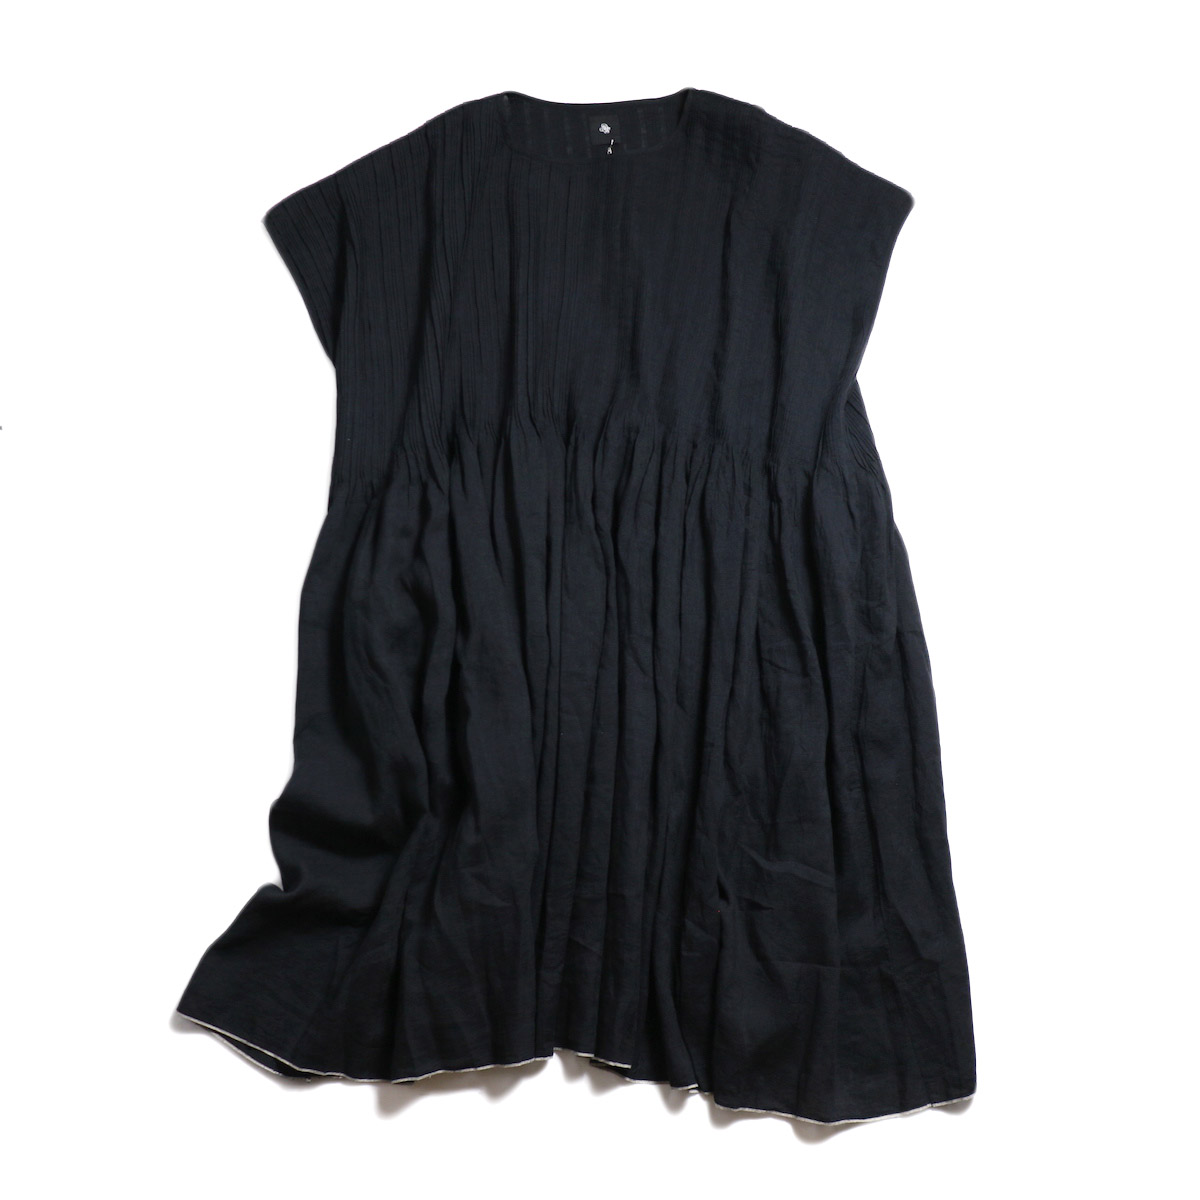 maison de soil / Pandom Pleats Dress -Black